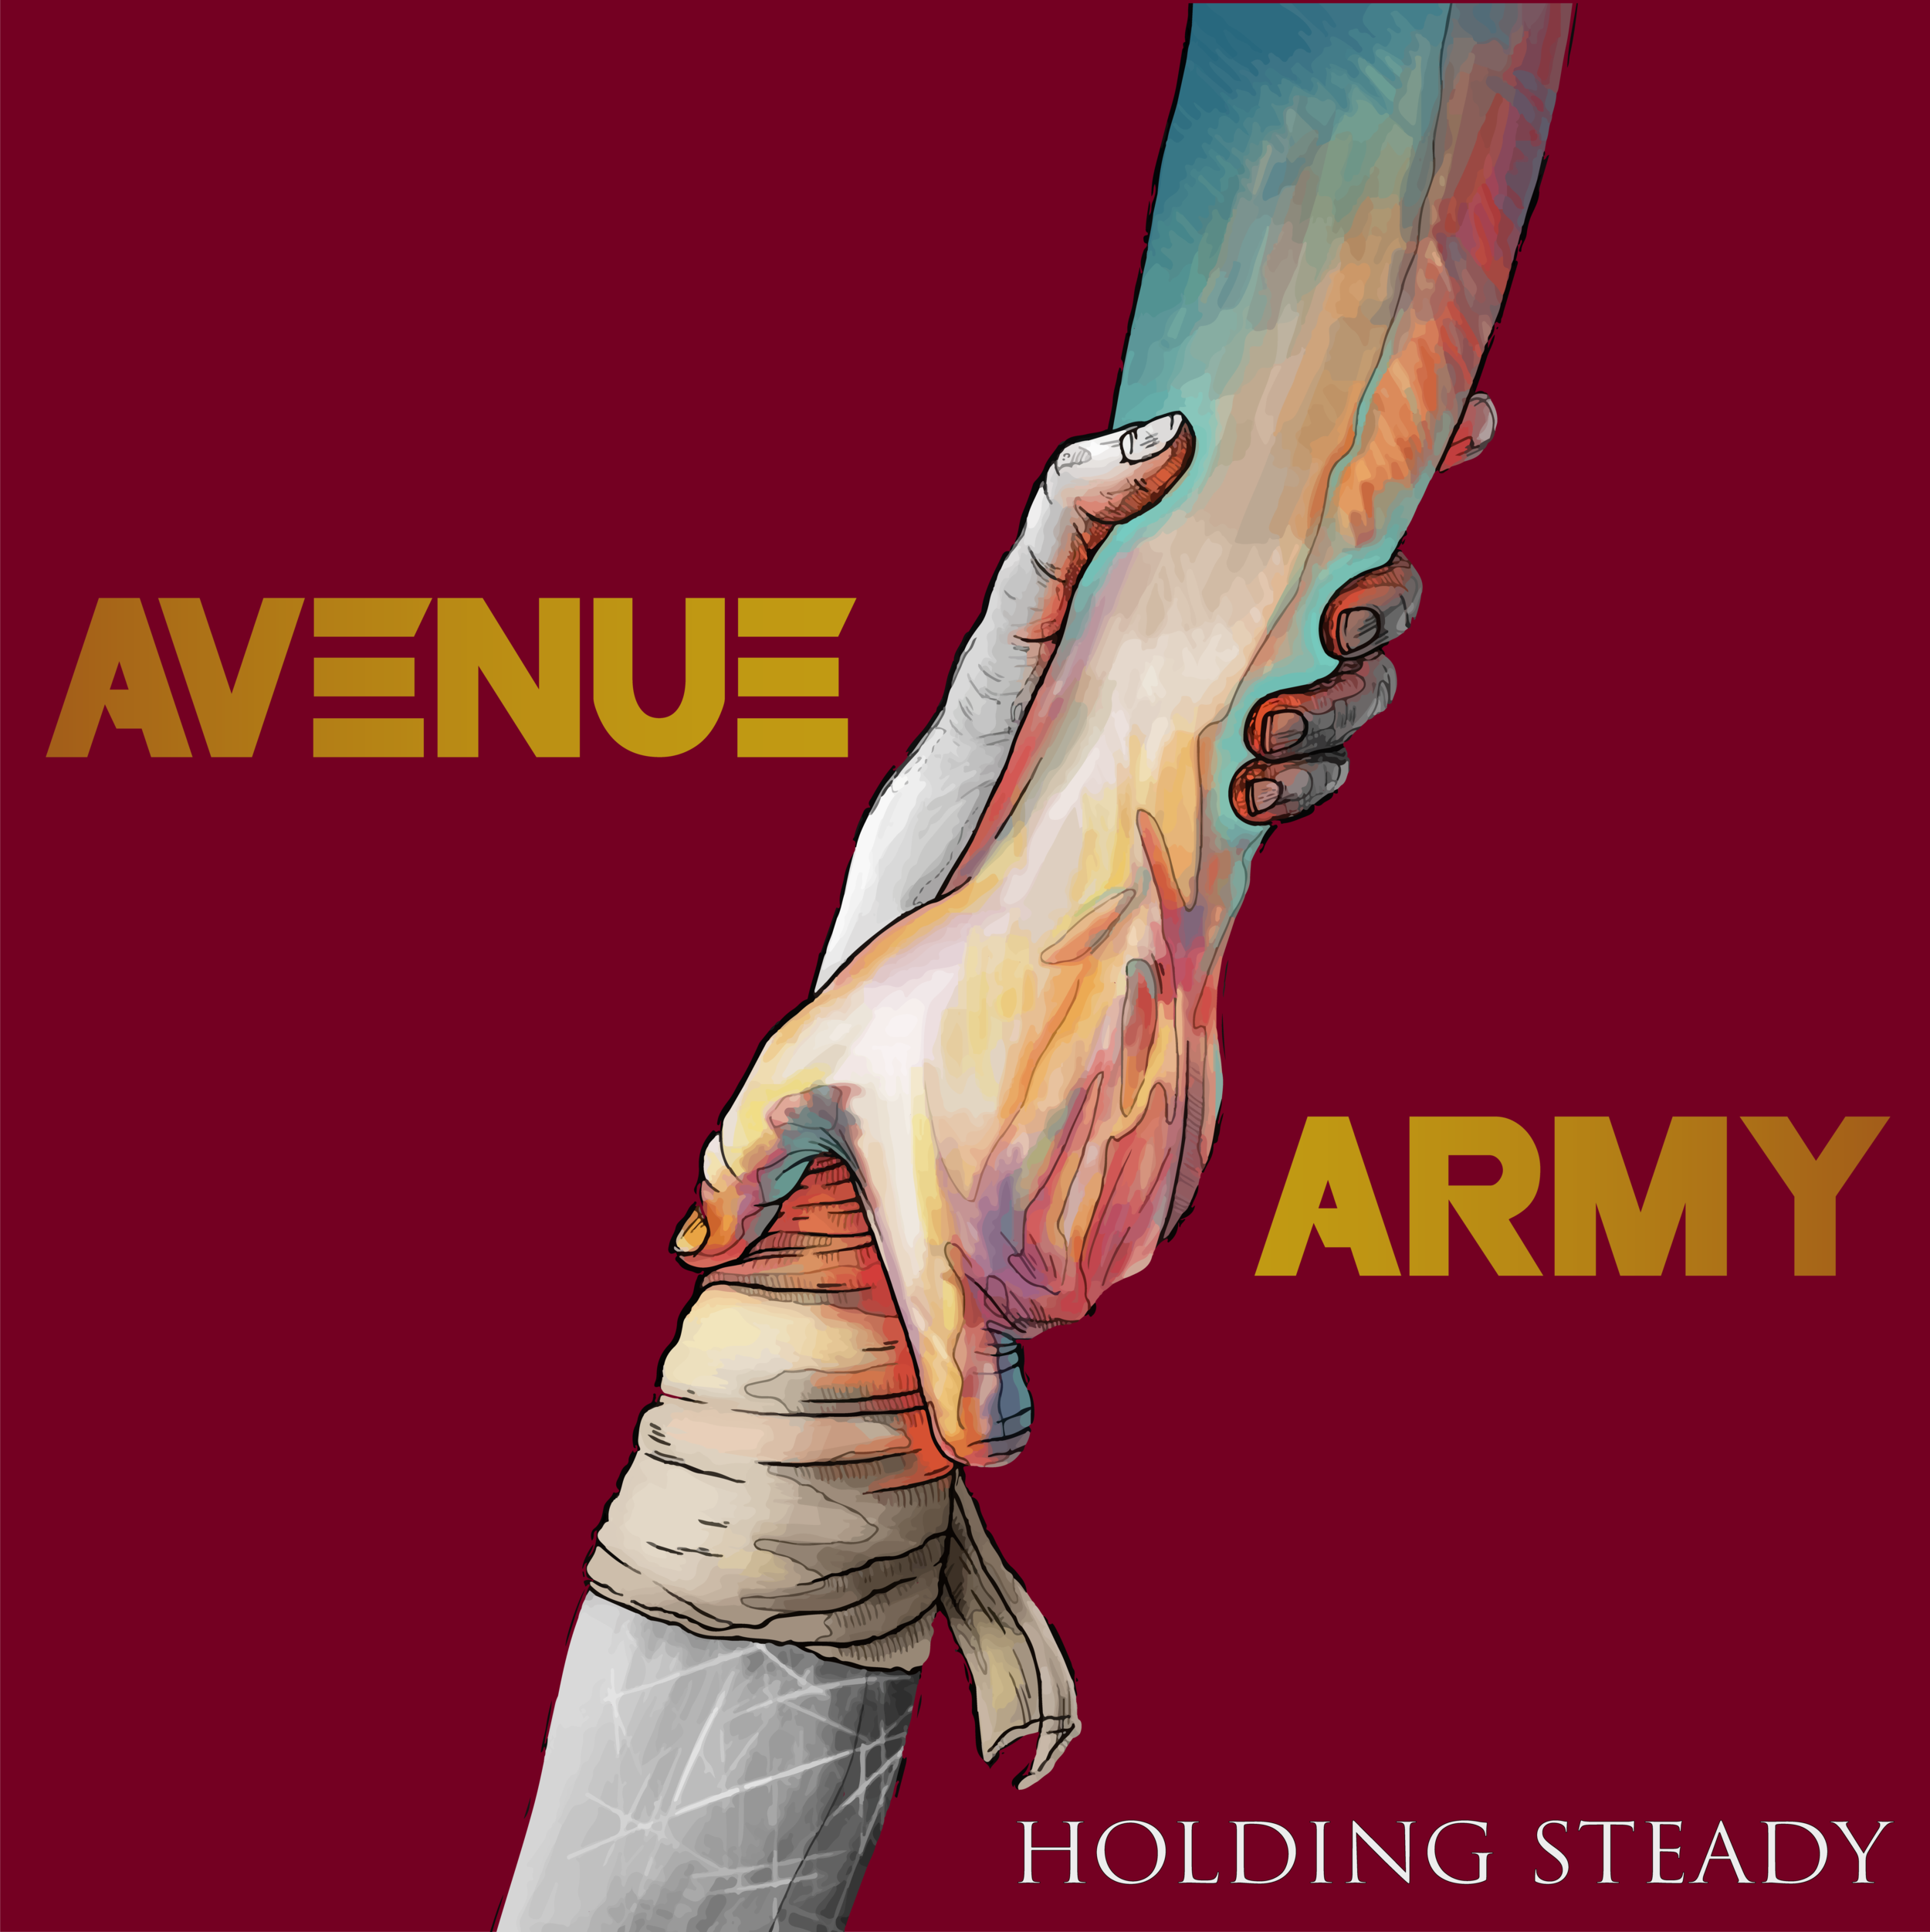 holding steady art-02 (1).PNG